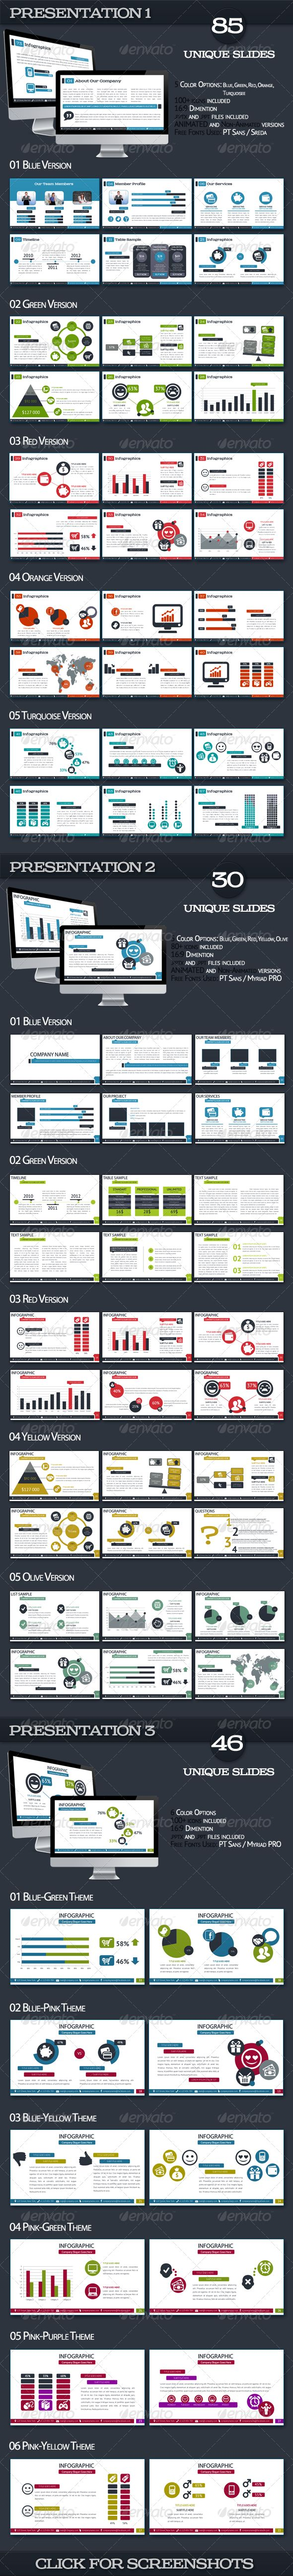 Bundle Powerpoint Presentations  #GraphicRiver                 1700 Slides in 20 powerpoint files.   Files included: 10 pptx files: 5 Animated Versions: Blue, Green, Red, Orange and Turquoise 5 NON-Animated Versions: Blue, Green, Red, Orange and Turquoise    10 ppt files: 5 Animated Versions: Blue, Green, Red, Orange and Turquoise 5 NON-Animated Versions: Blue, Green, Red, Orange and Turquoise    Features:  85 unique slides 100+ icons 5 color options: Blue, Green, Red, Orange and…